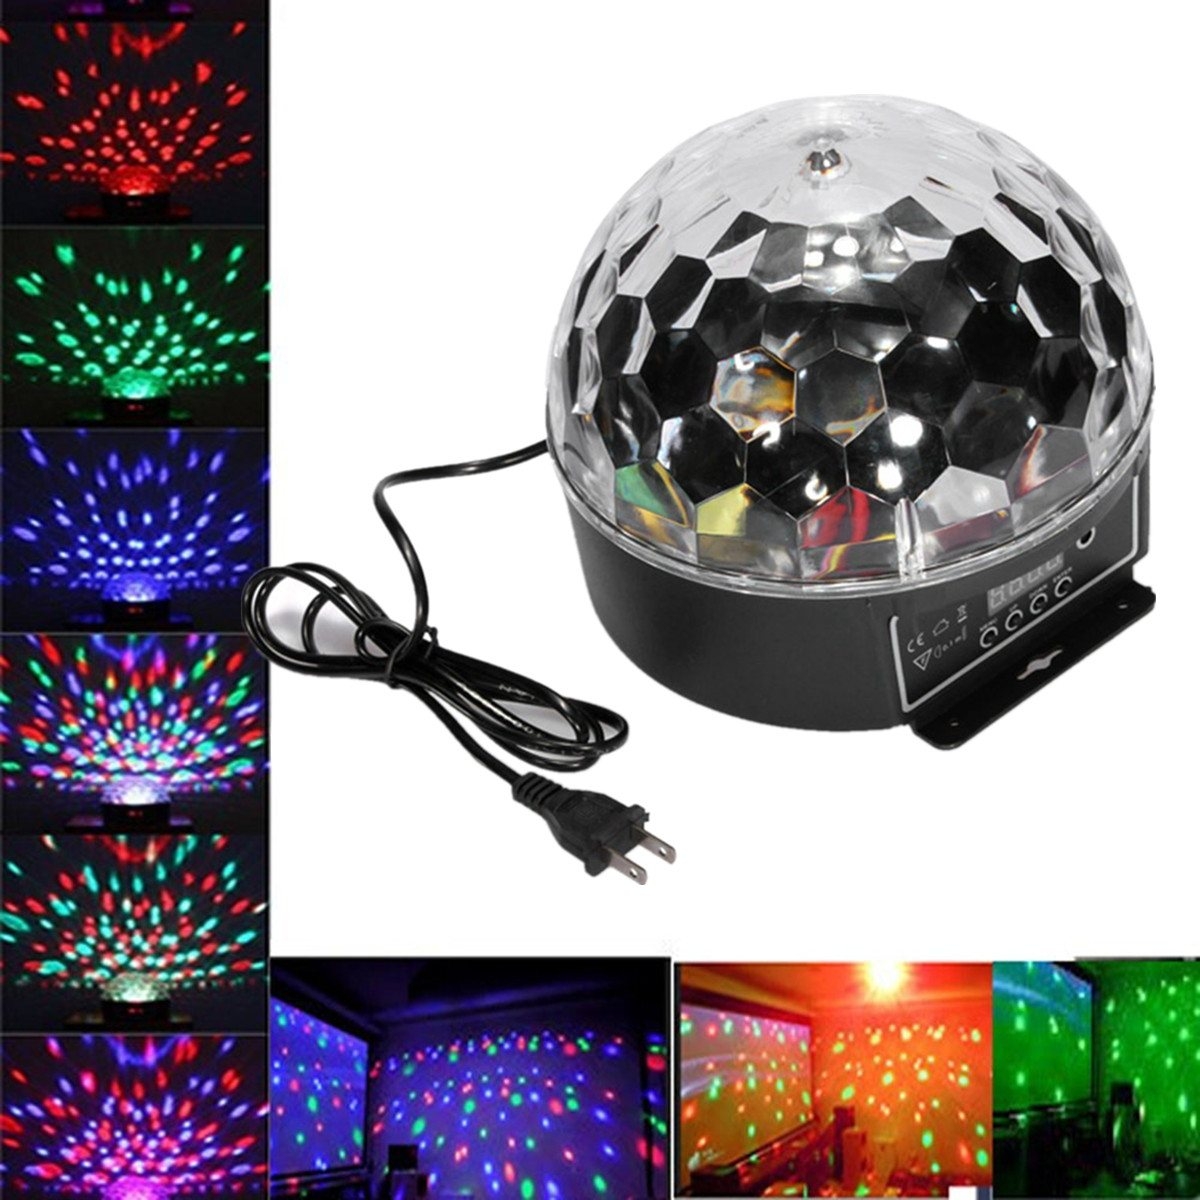 Smuxi DJ Disco Ball 20W Sound Activated Laser Projector RGB Stage Lighting Effect Lamp Christmas KTV Music Party Light mini led laser projector christmas decoration laser disco light stage effect light dj voice activated ktv xmas party music light